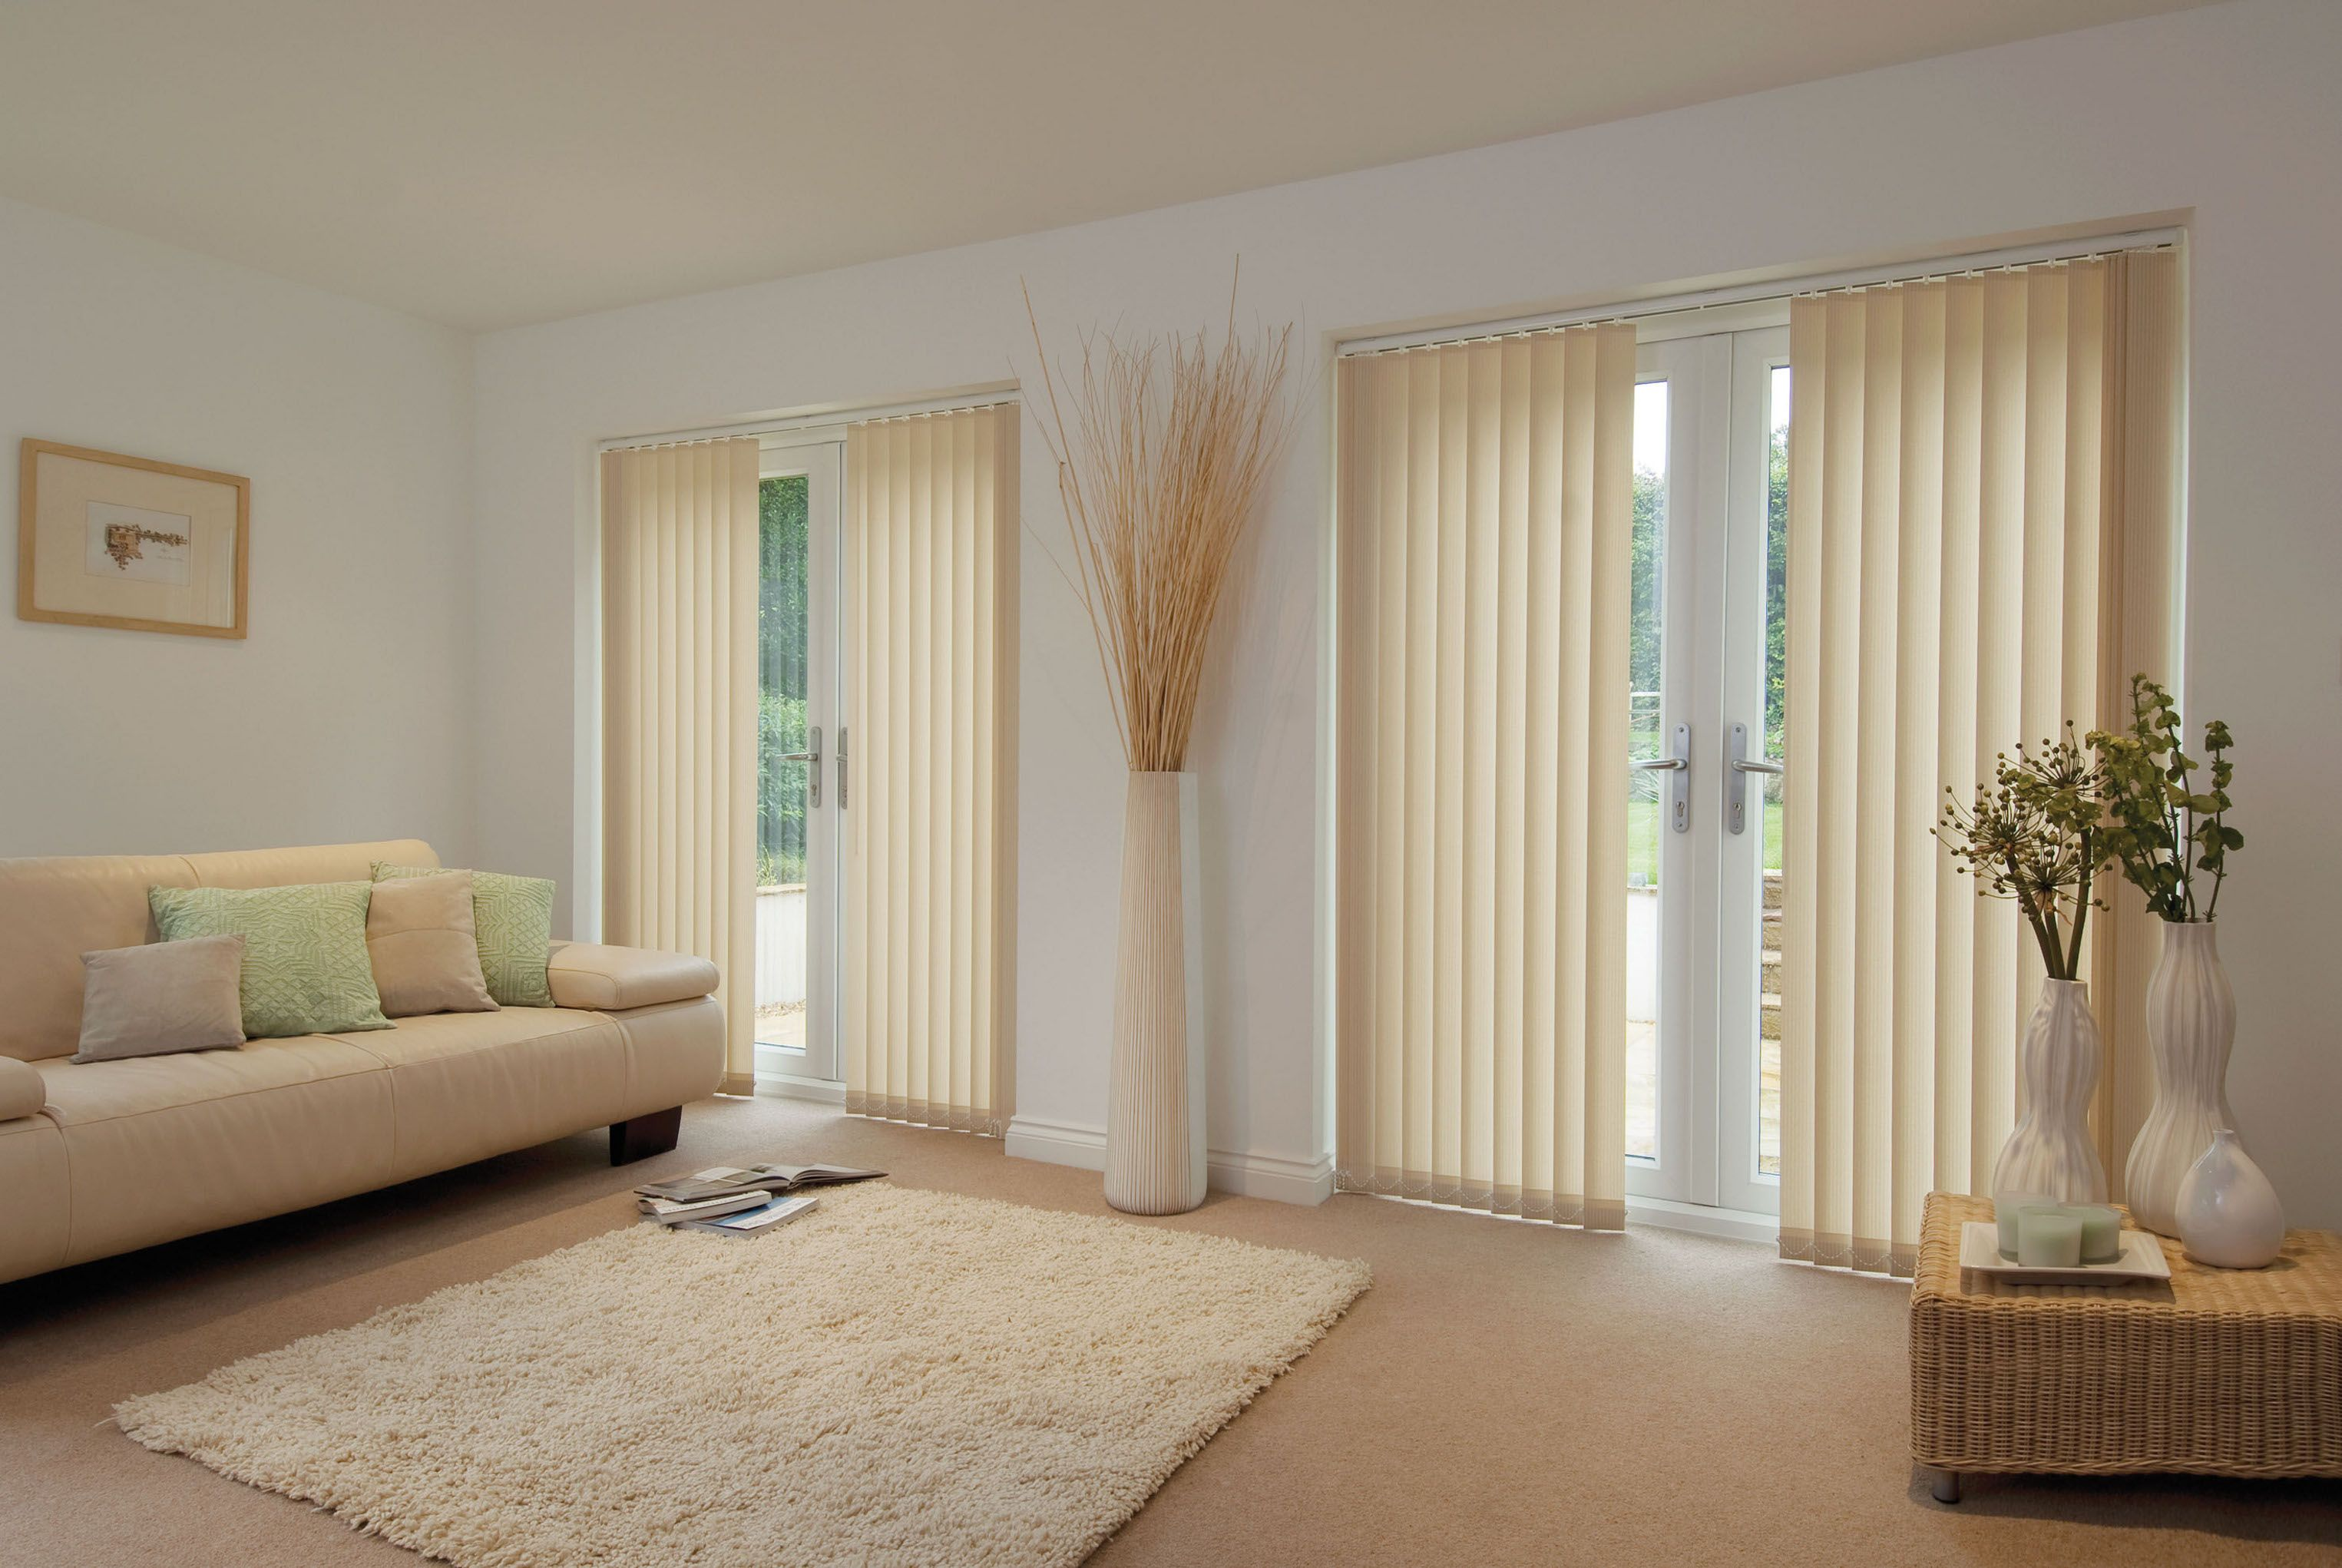 dealers shades frightening canada douglas curtains costco rods window blinds curtain photos online hunter